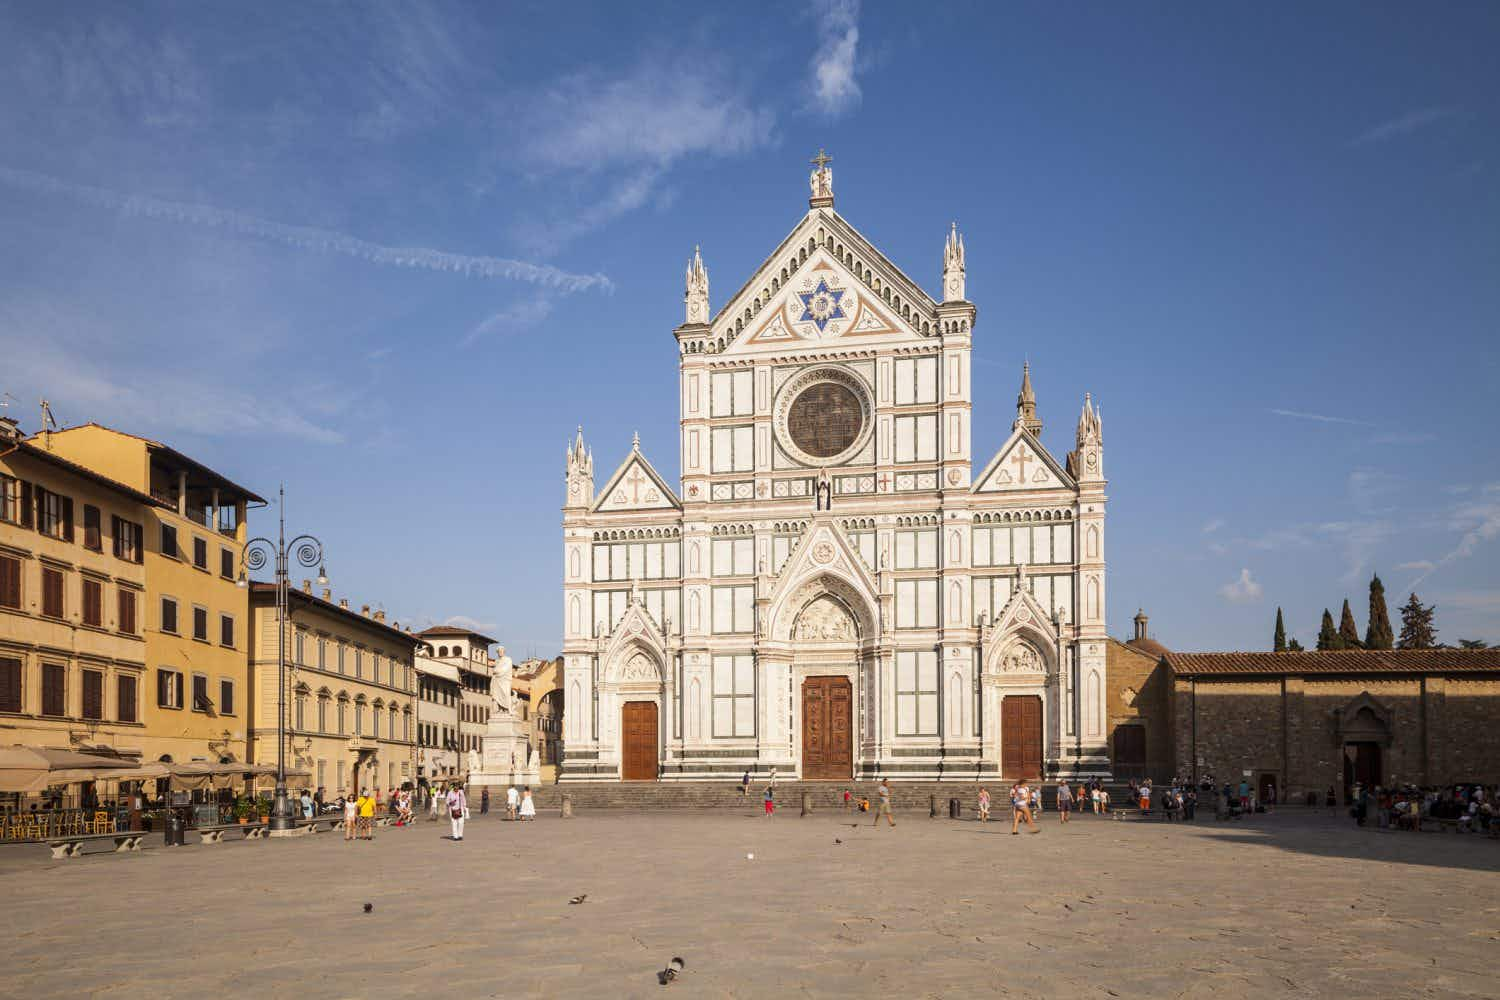 Here's why you might get a soggy bottom sitting on historic basilica steps in Florence